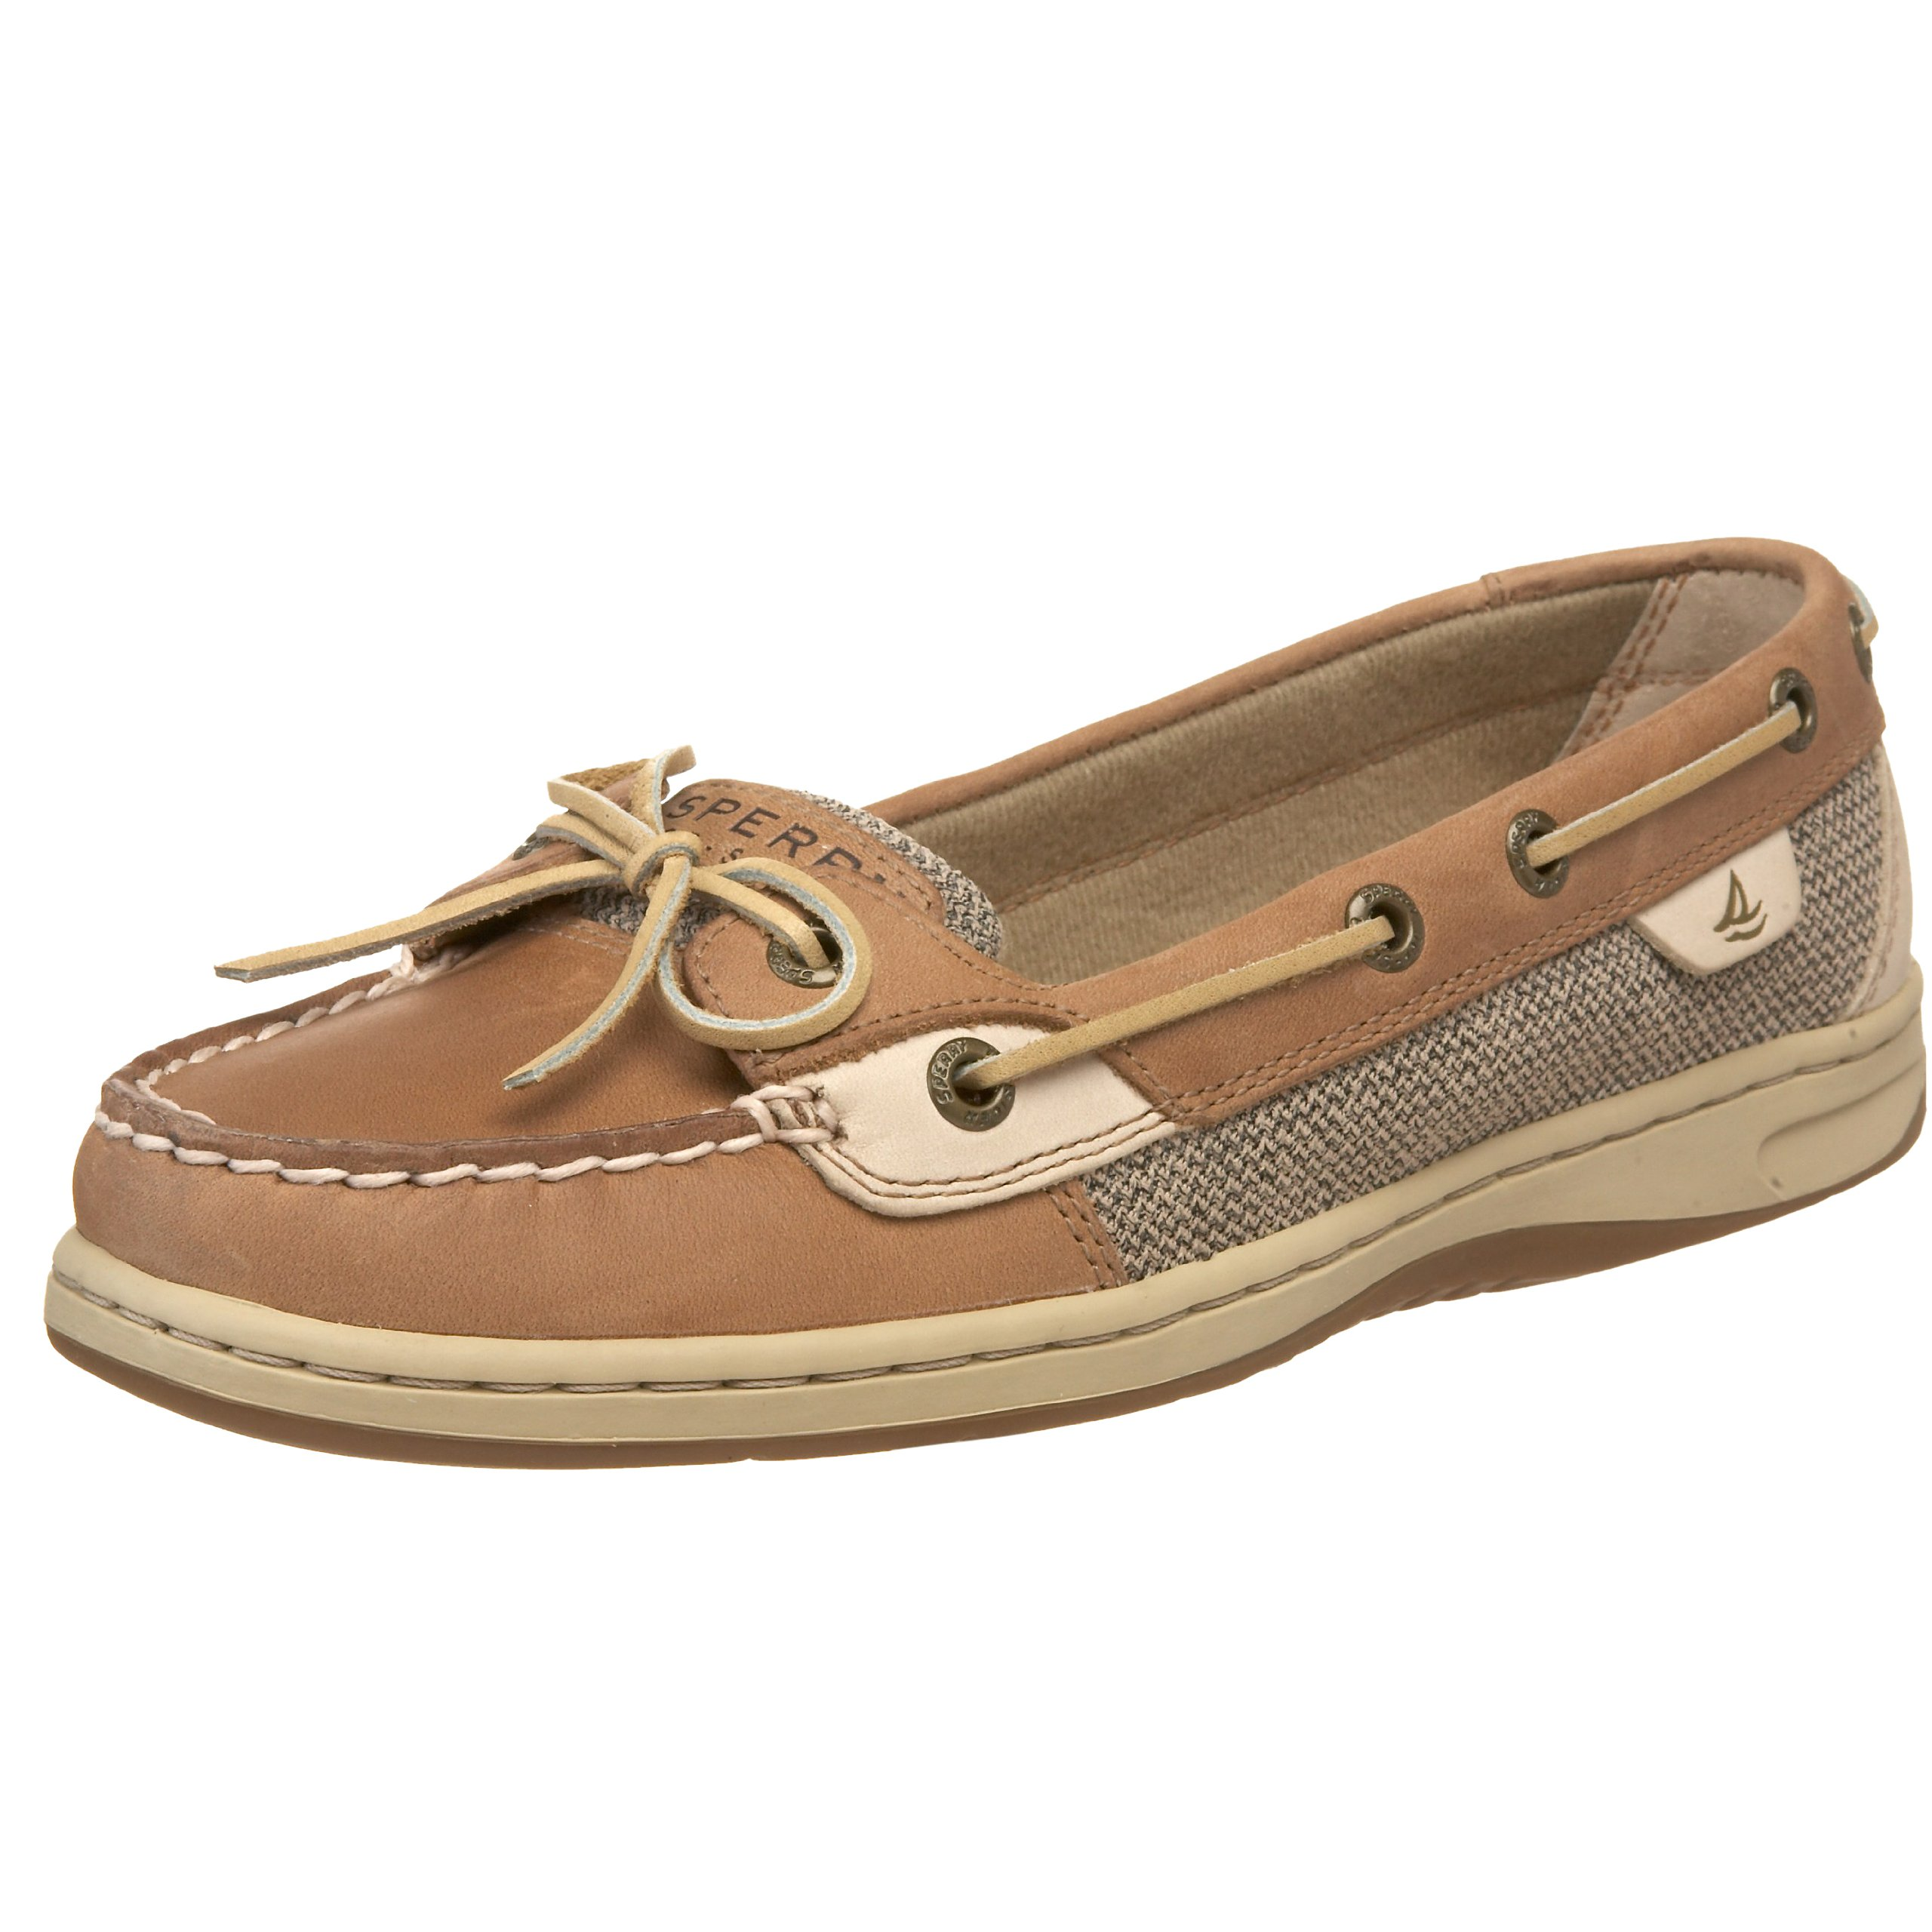 The Best Sperry Top Siders [Boat Shoes] | The Shoes For Me